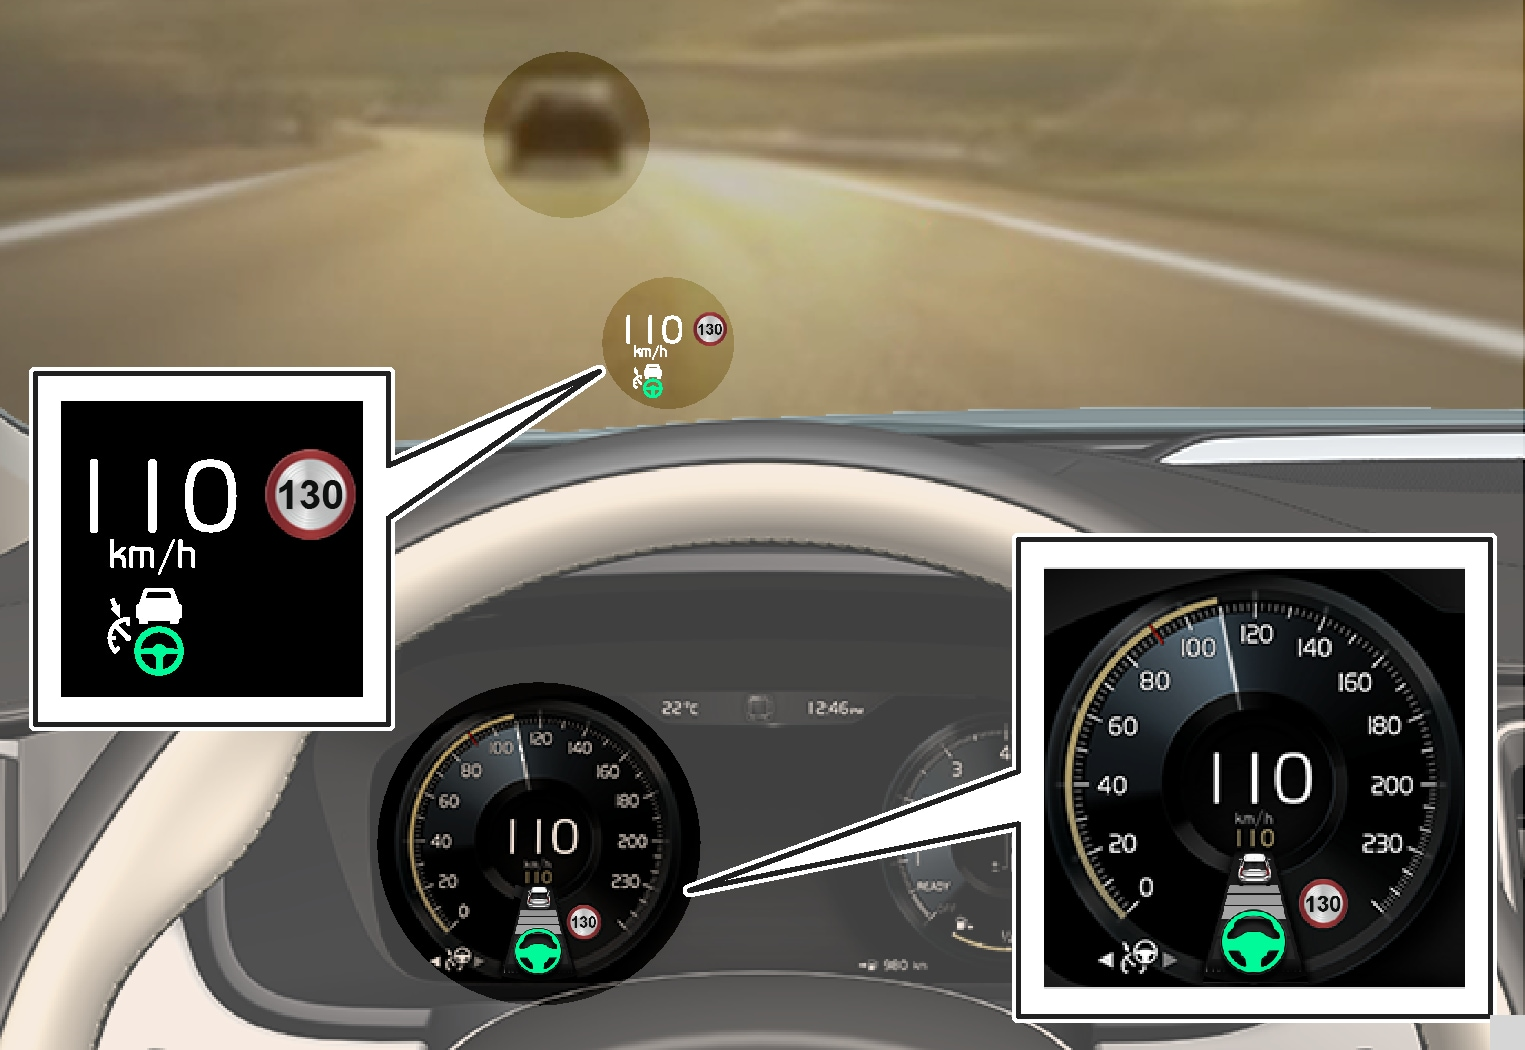 P5-V90/S90-1646-Pilot Assist, set to maintain 110 km/h, to follow a vehicle ahead and steering assistance